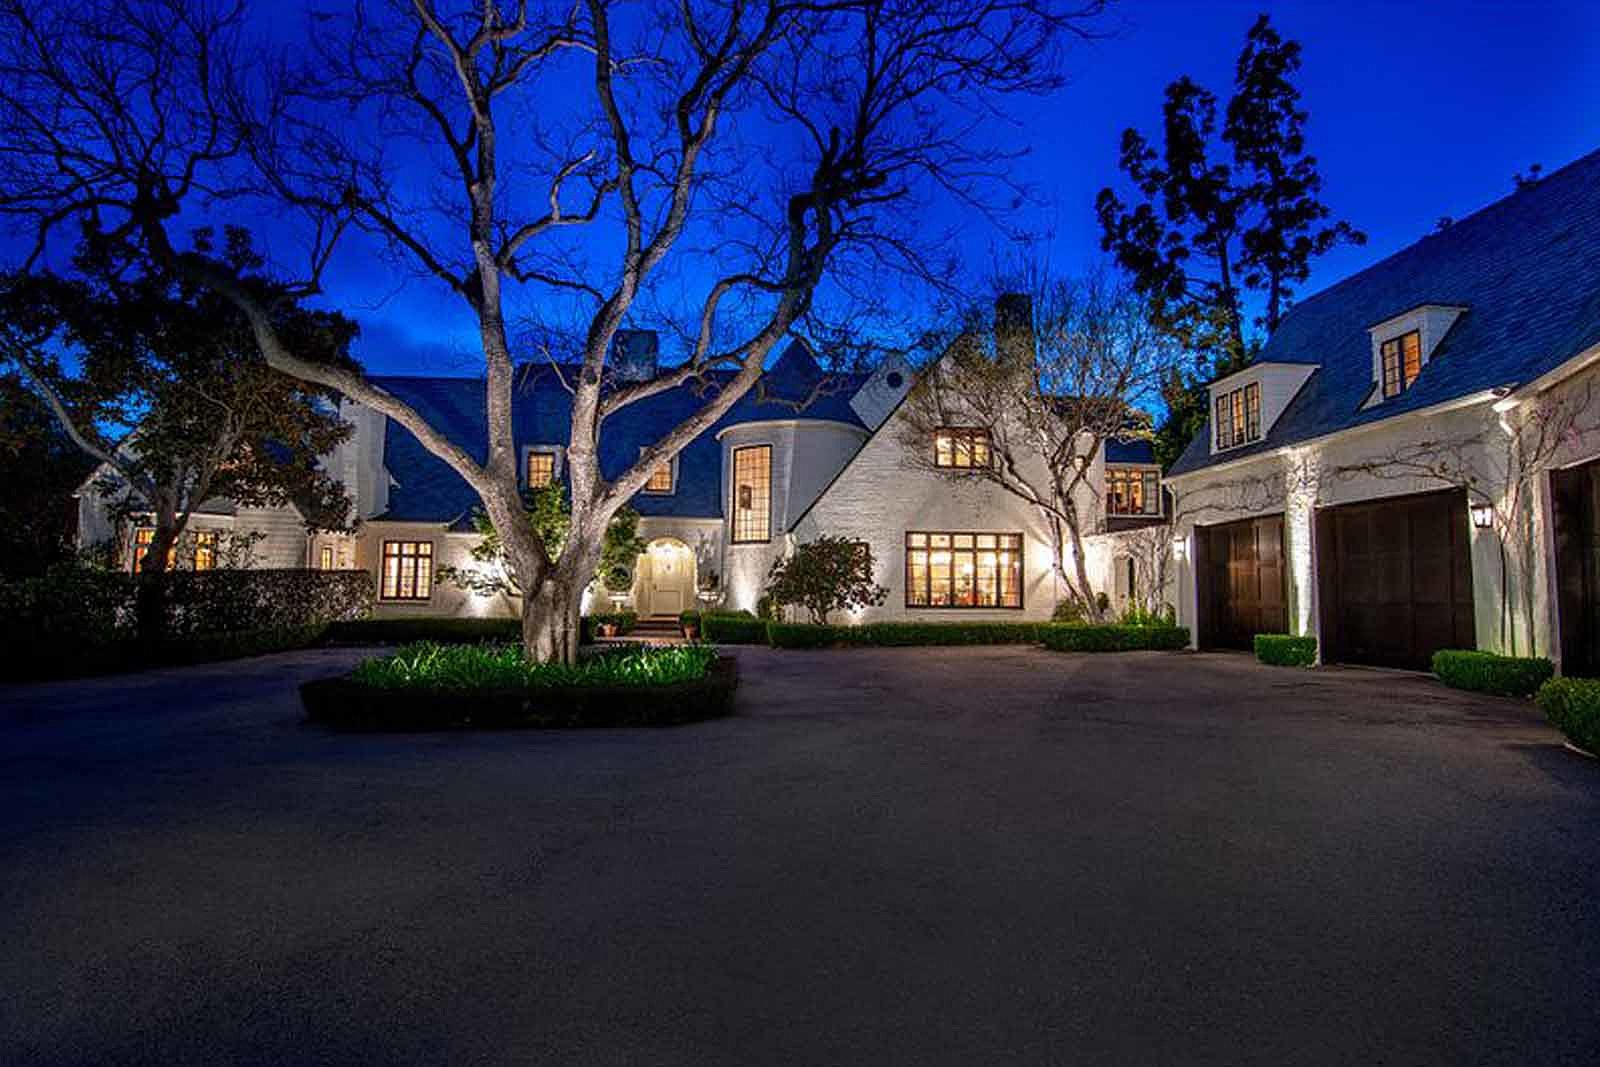 Lindsey Buckingham Sells 'Extremely Private' Compound for $28 Million